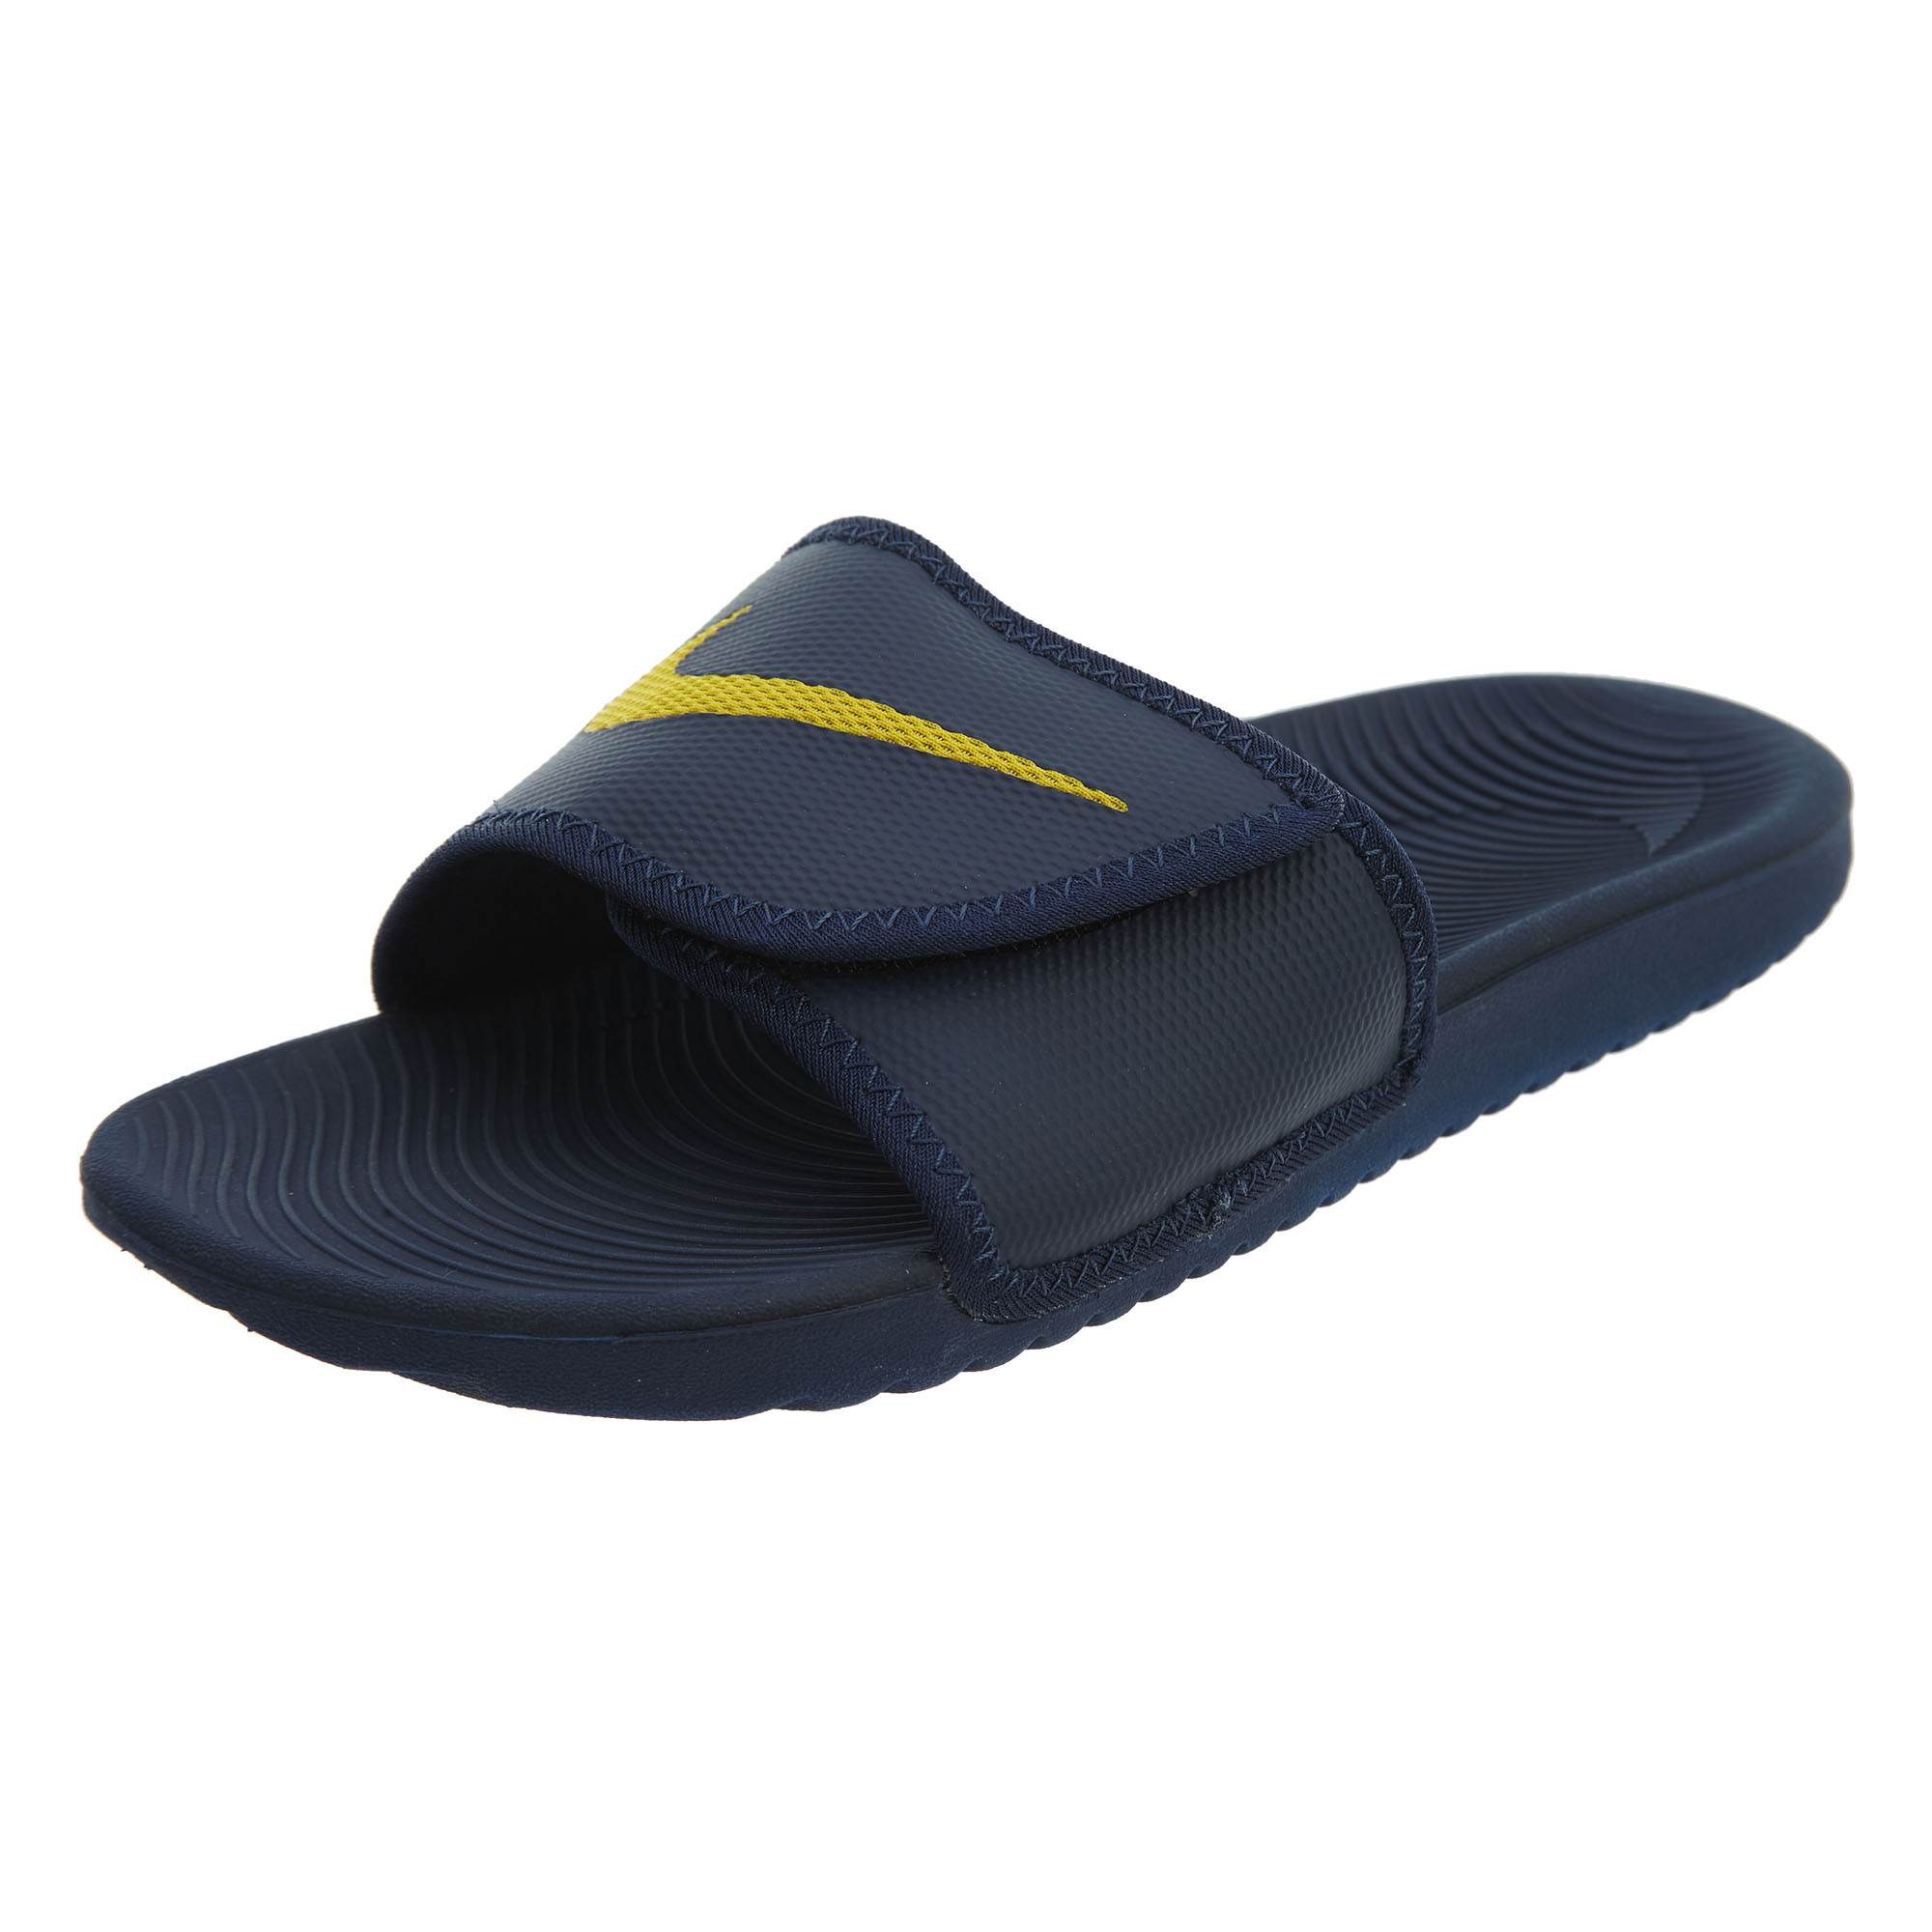 low priced 5ab6a 16a0c Details about Nike Mens Kawa Adjust Slide Sandals 834818-403